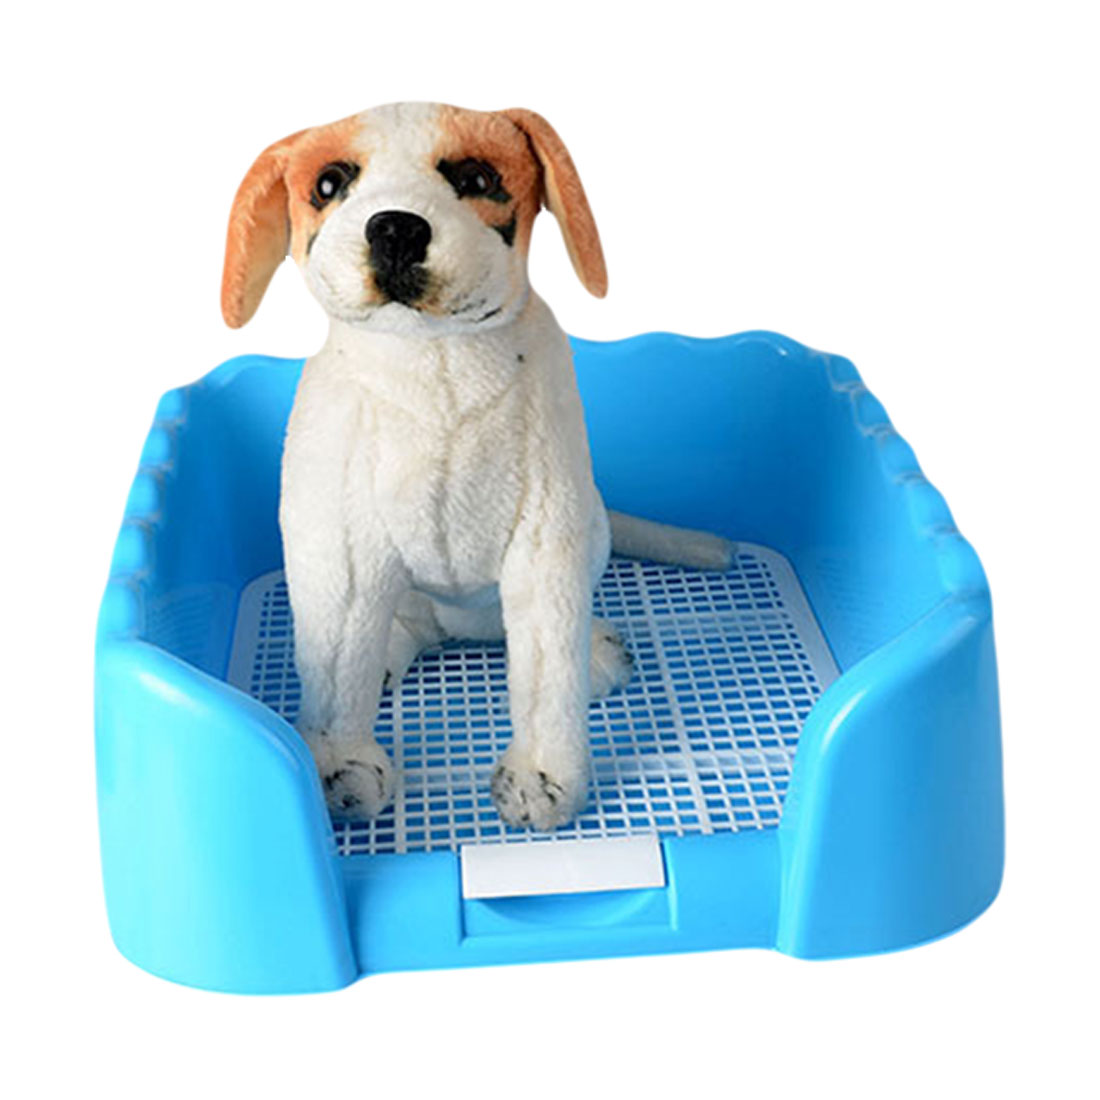 Portable Puppy Training Tray with Fence for Pet Dogs and Cats Potty and Pee Training Indoor 14